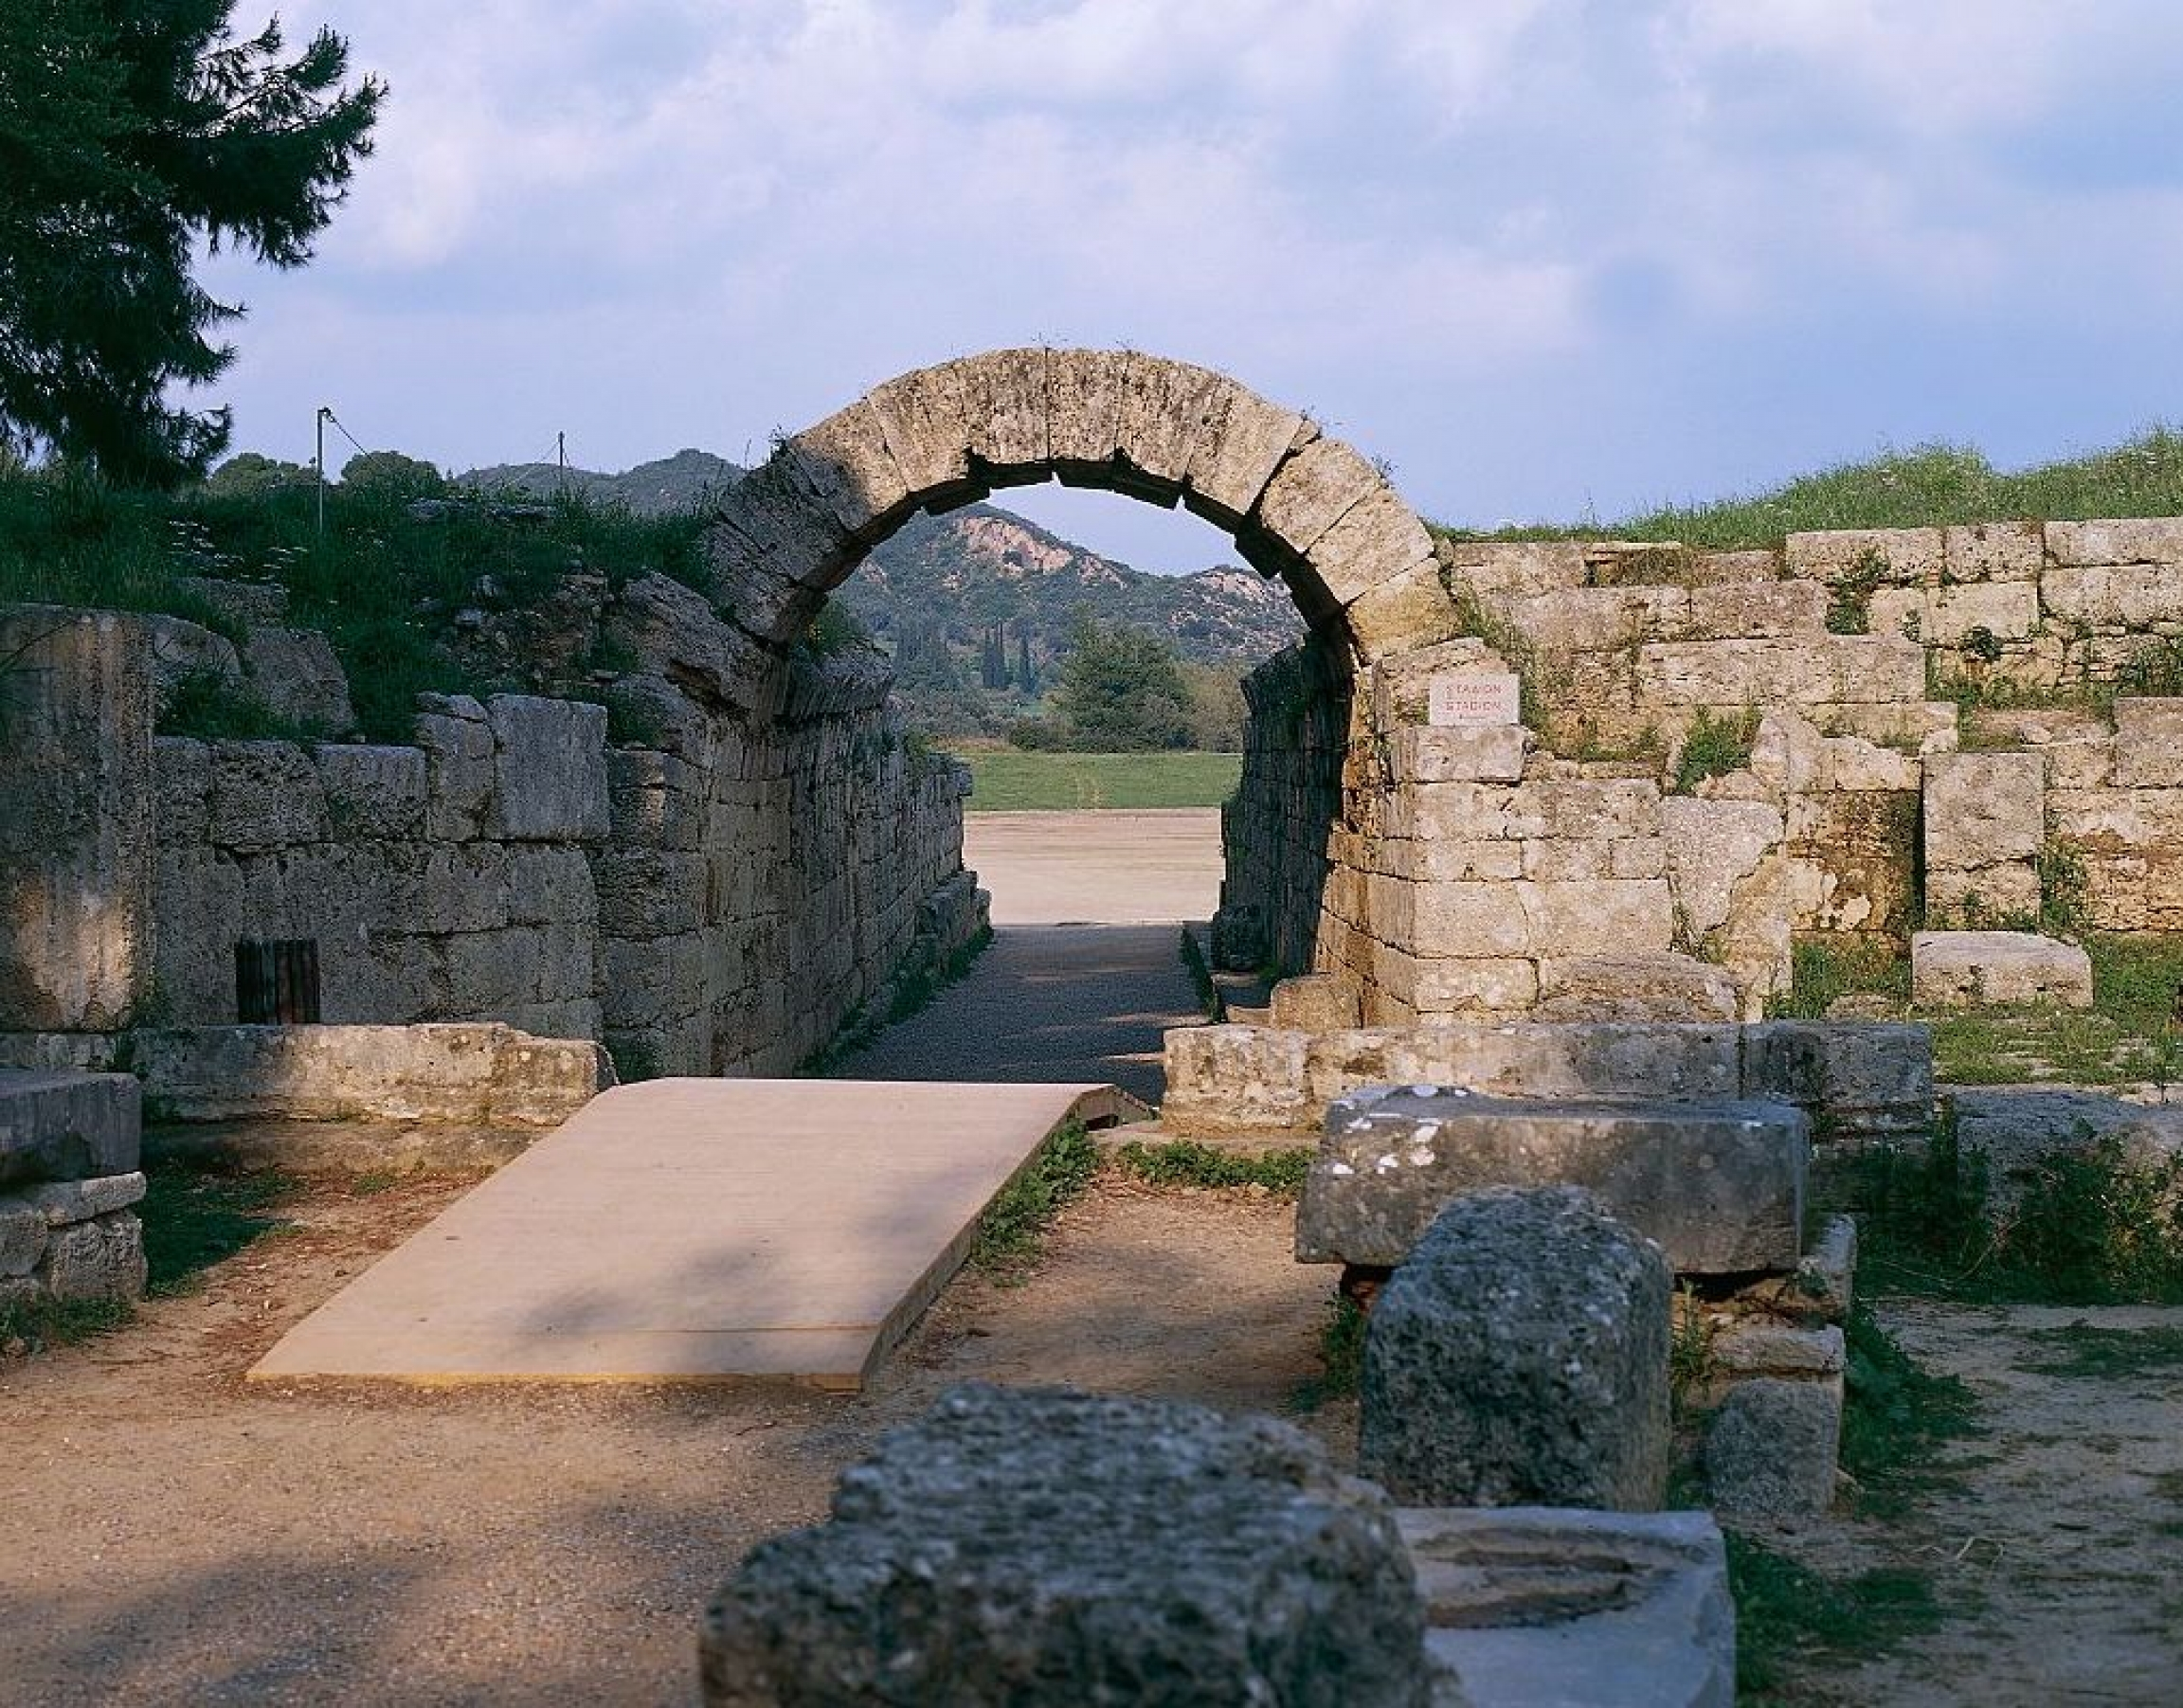 The Crypt, the entrance to the Stadium of Olympia.